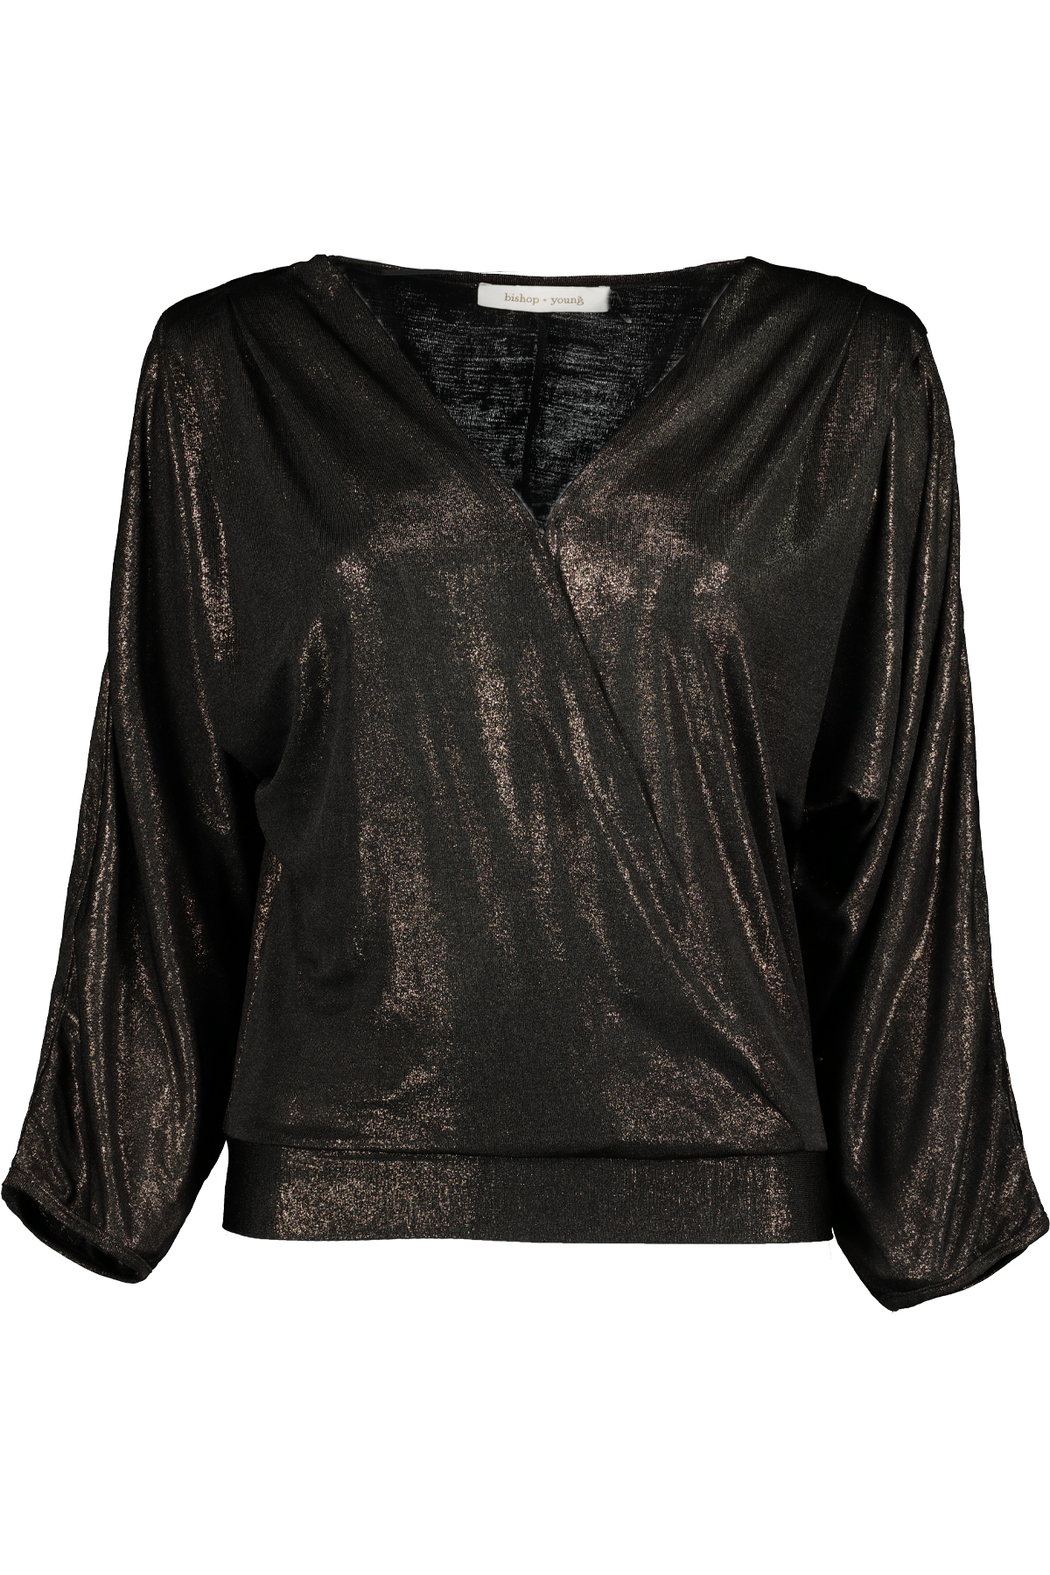 Bishop + Young Starpower Dolman Sleeve Top - Front Full Image